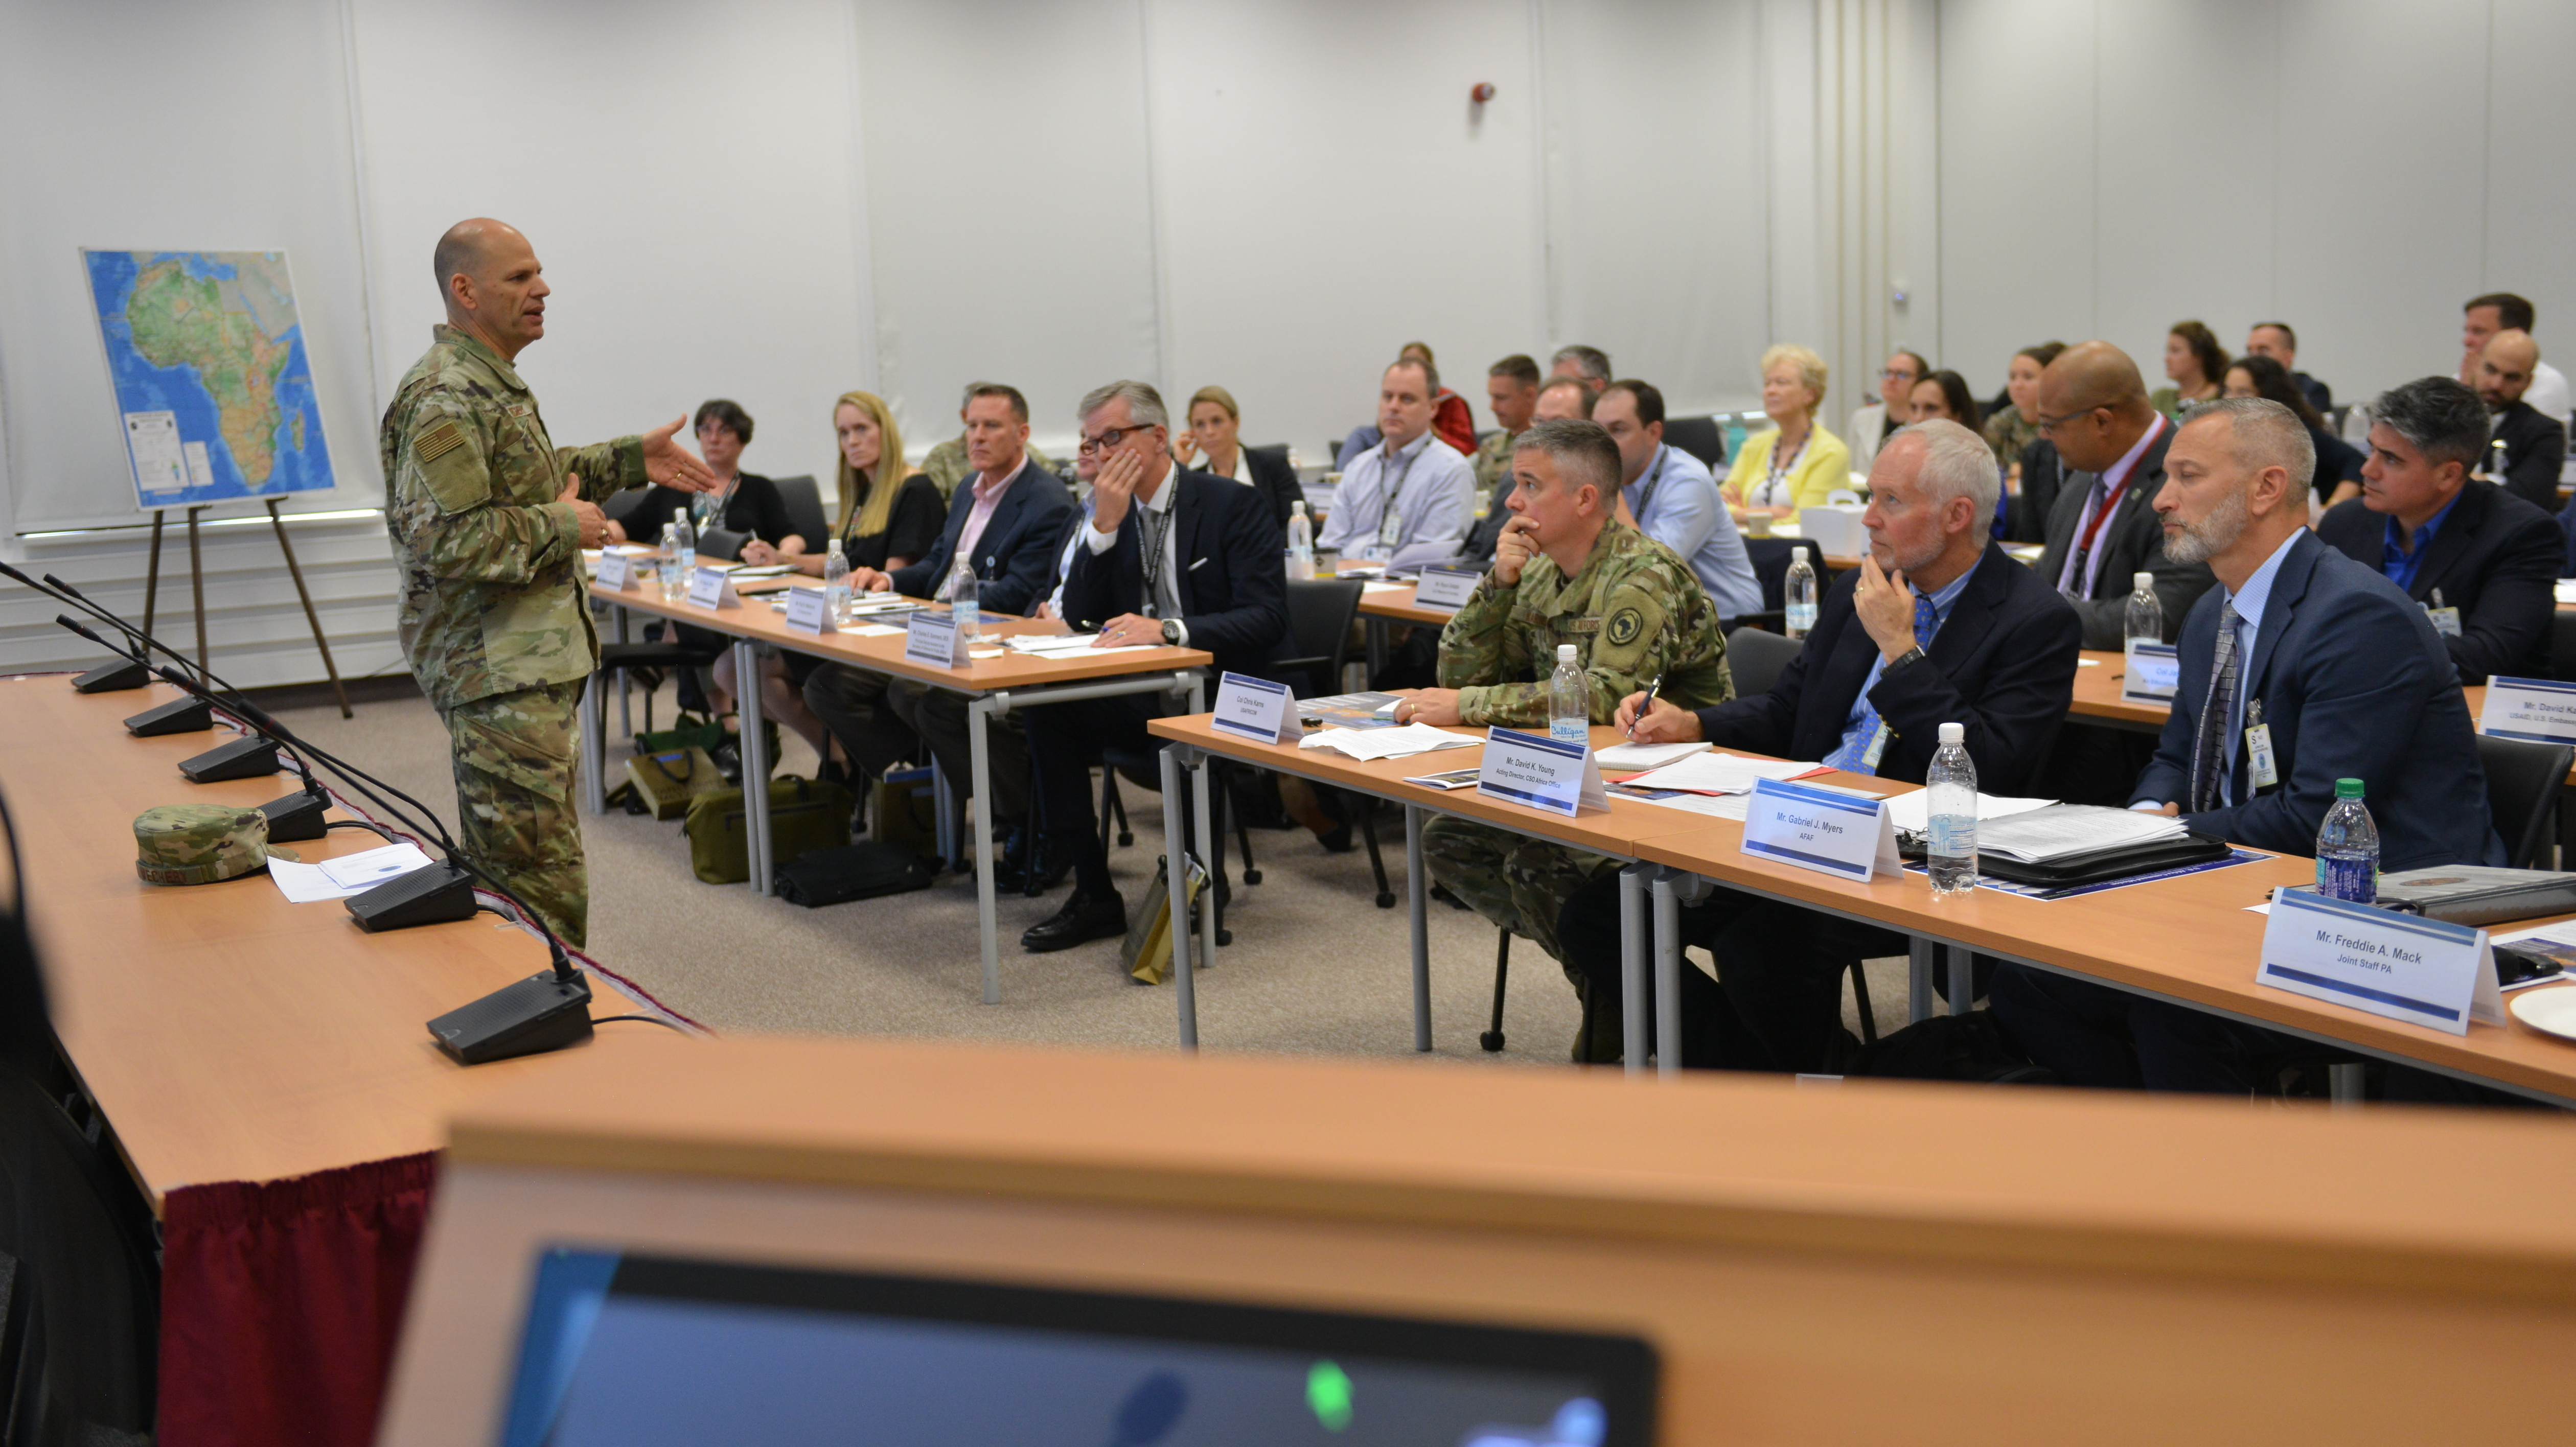 STUTTGART, Germany – Air Force Lt. Gen. James Vechery, deputy commander, U.S. Africa Command, addresses attendees of the AFRICOM Public Affairs Communicators Symposium, July 31, 2019 in Stuttgart, Germany. 